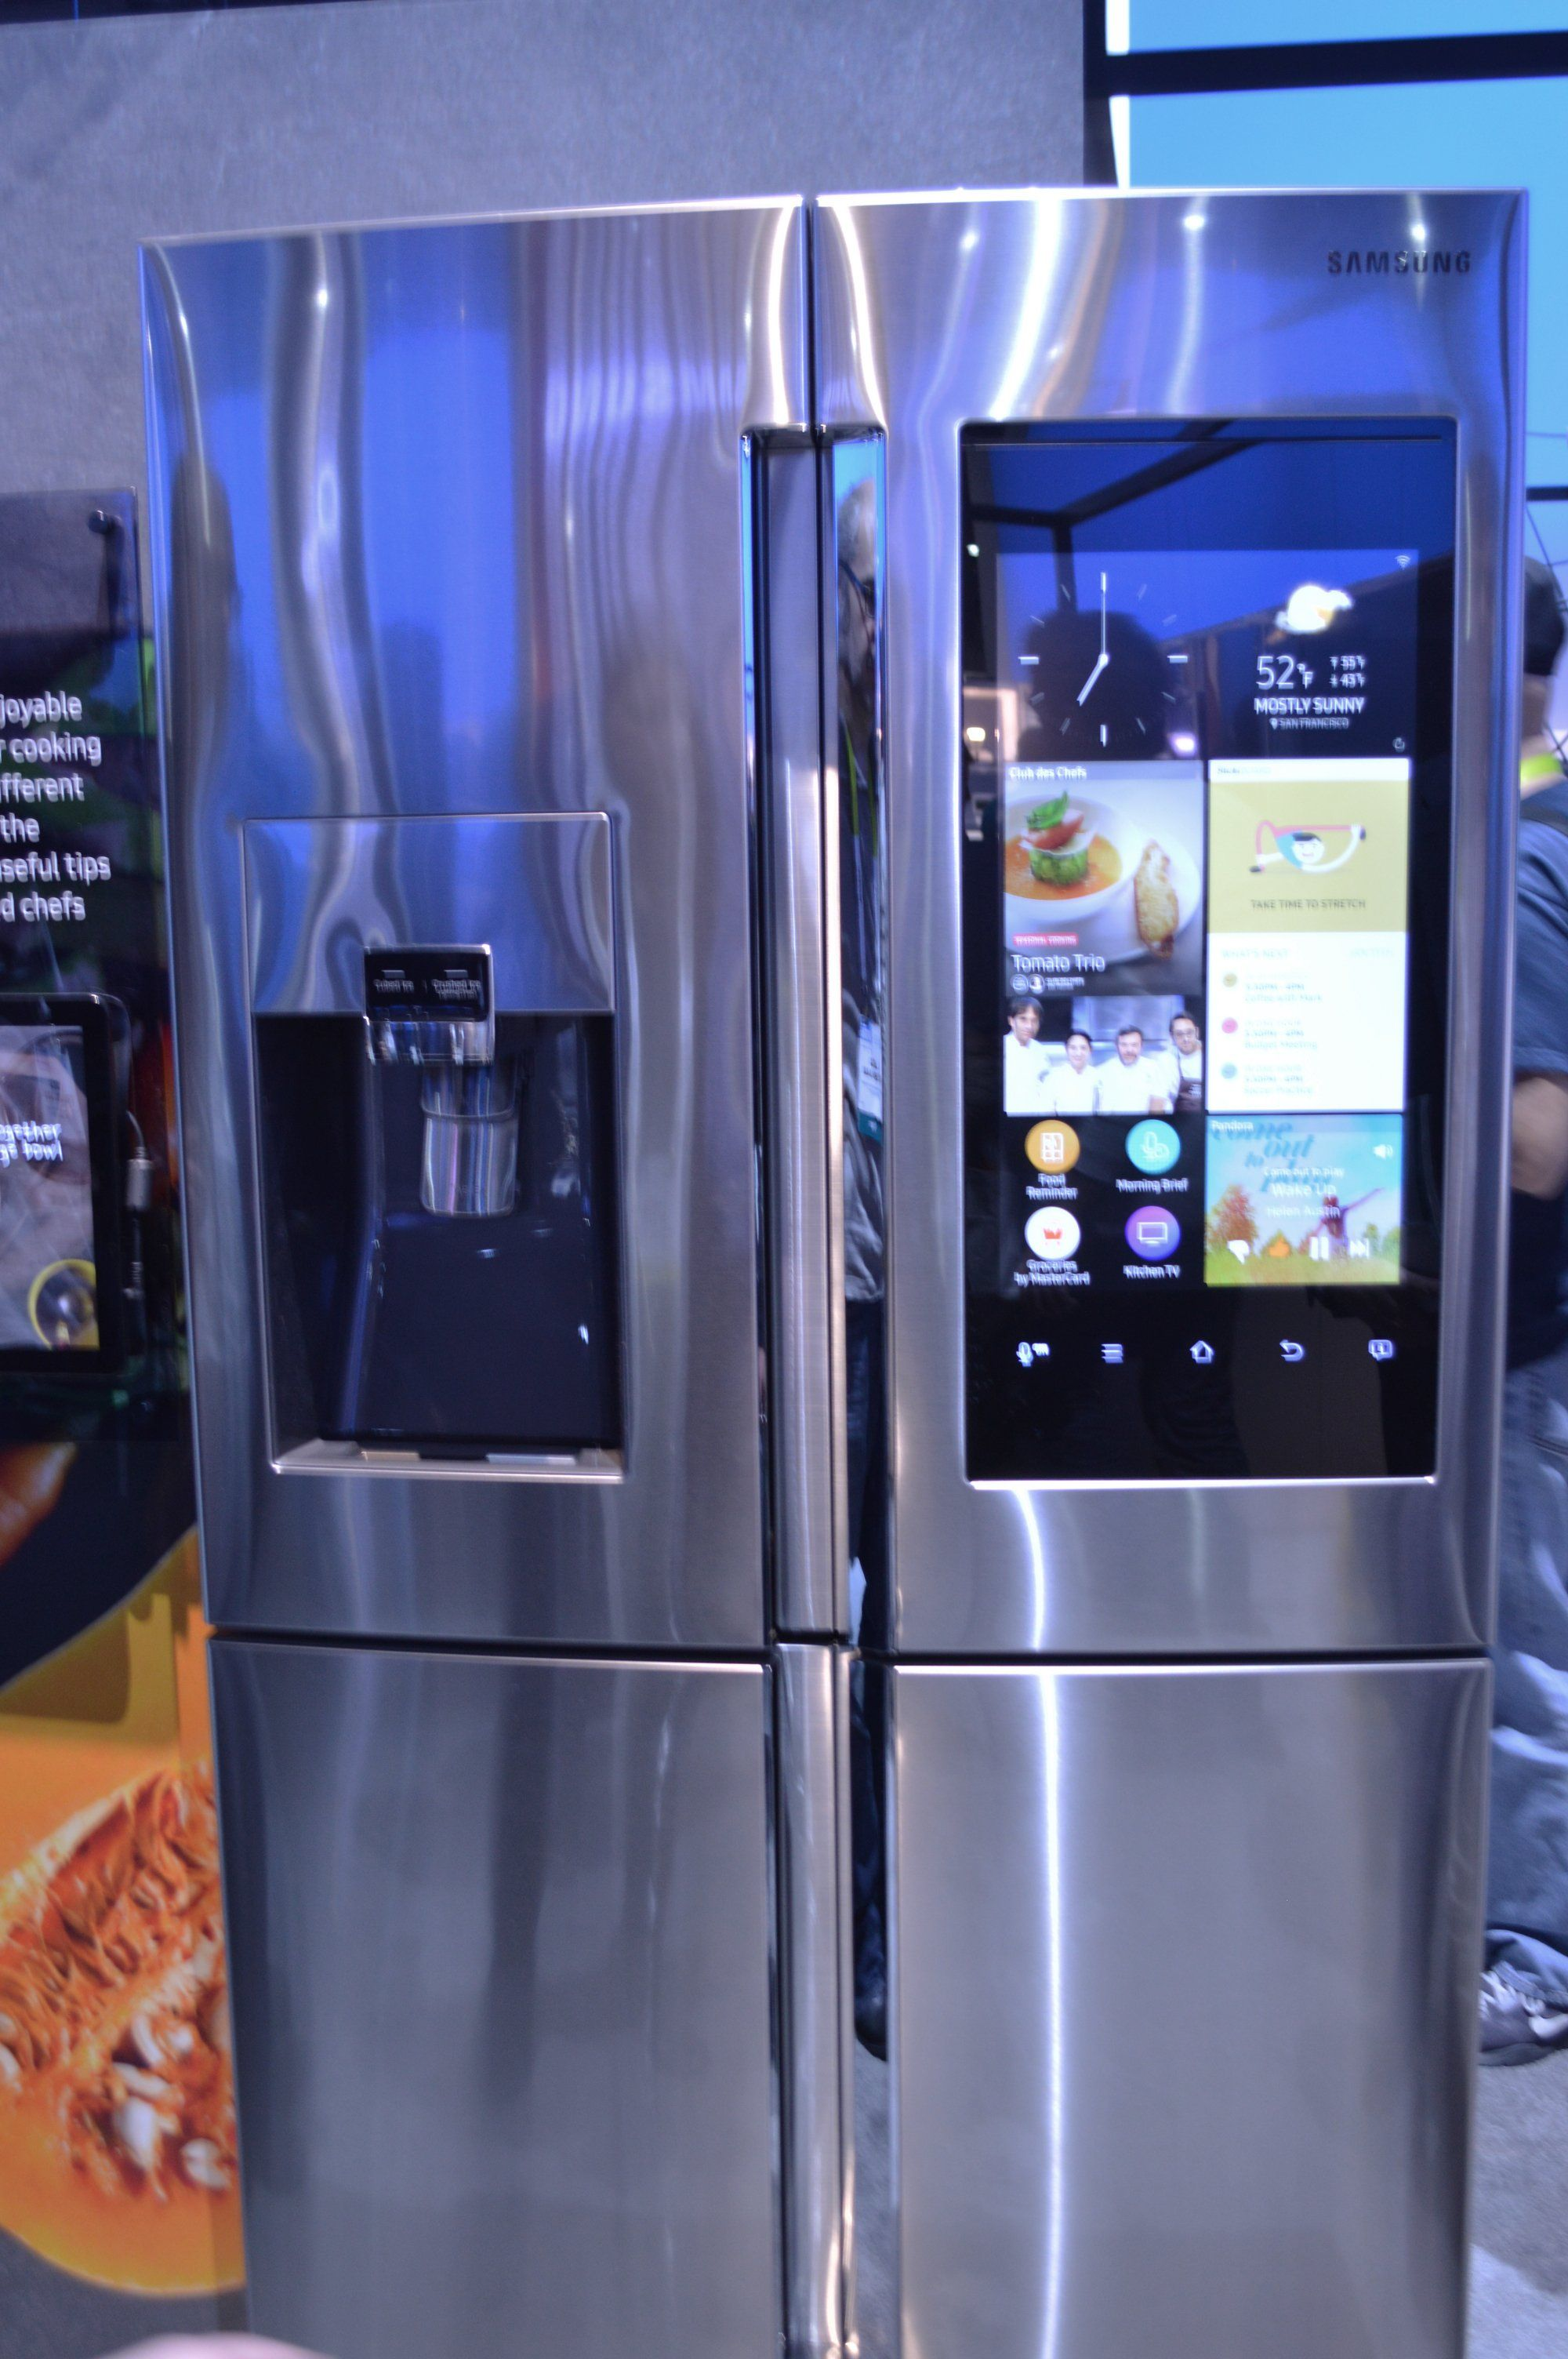 Family Hub Fridge Home gadgets, Home technology, Smart